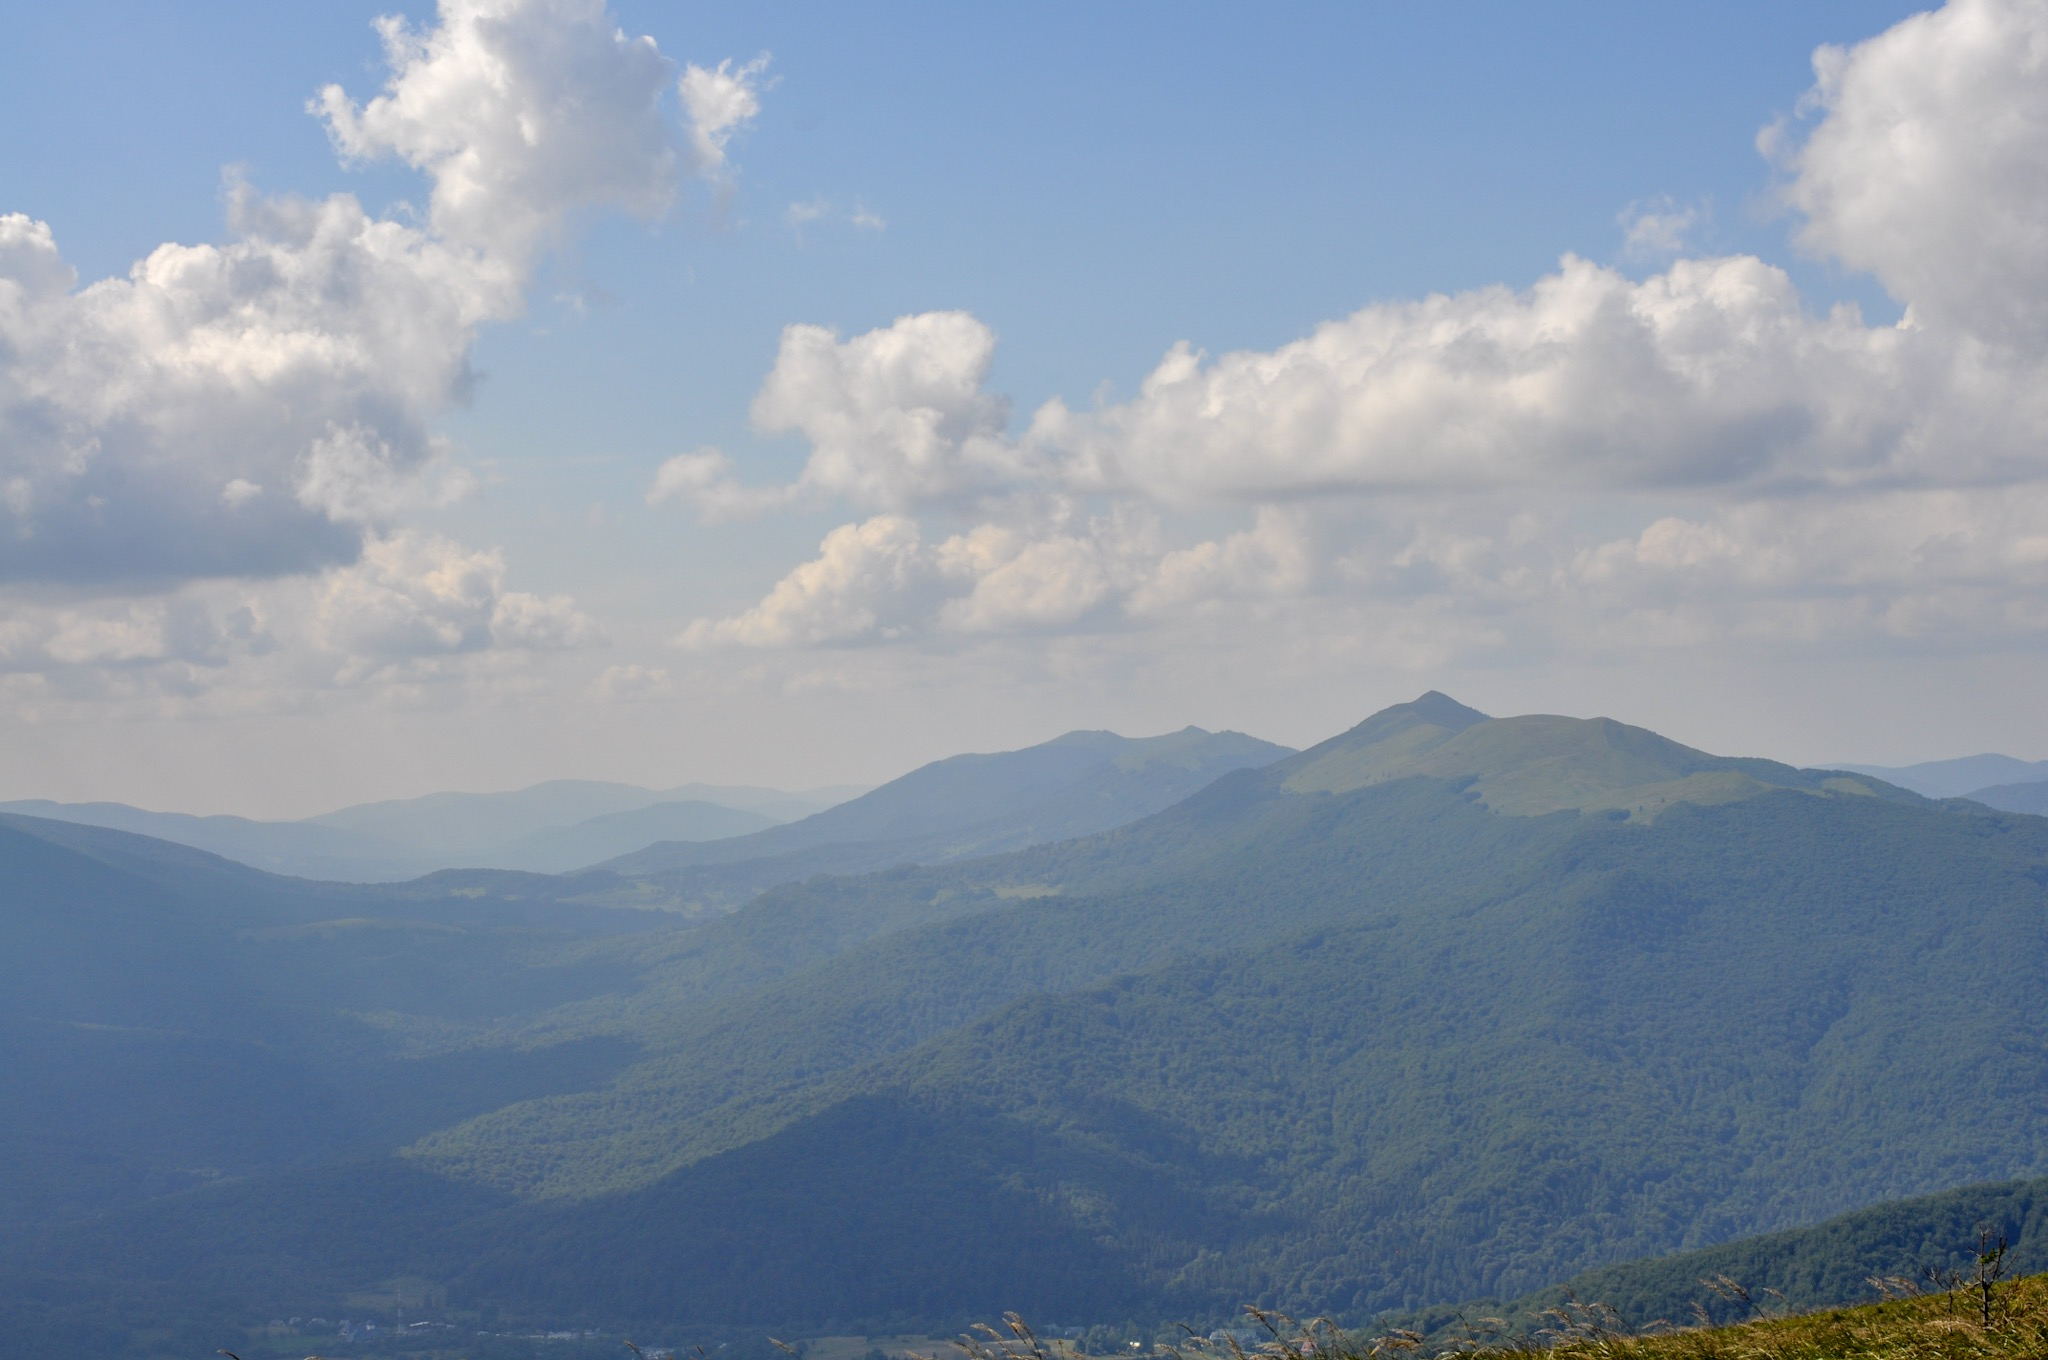 Moutain views from Tarnica summit